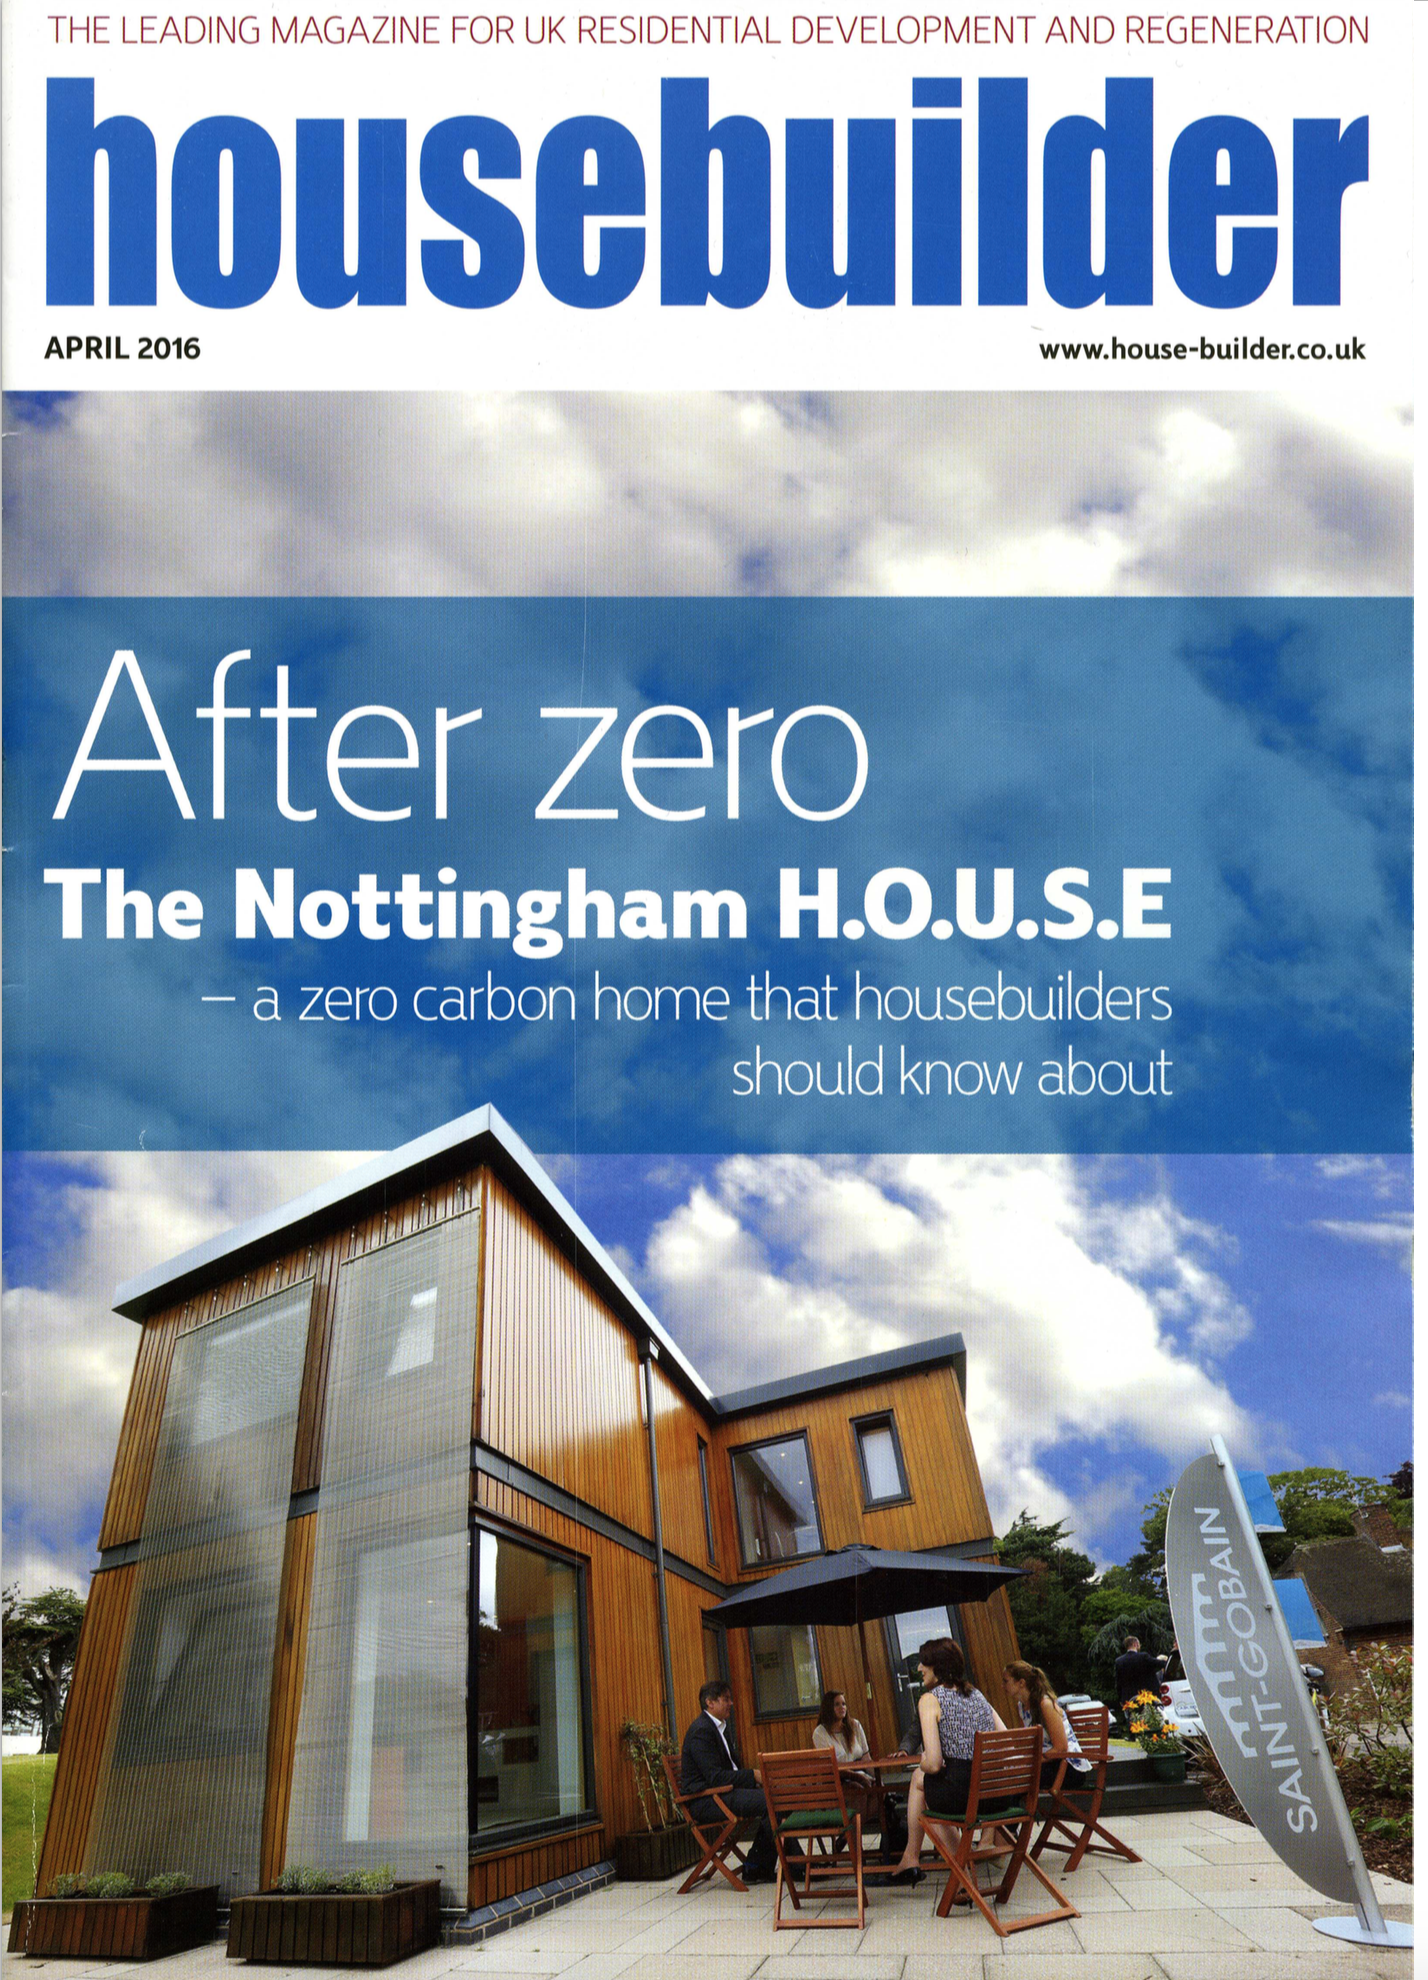 Nottingham house front page news in top building magazine for Home building magazines